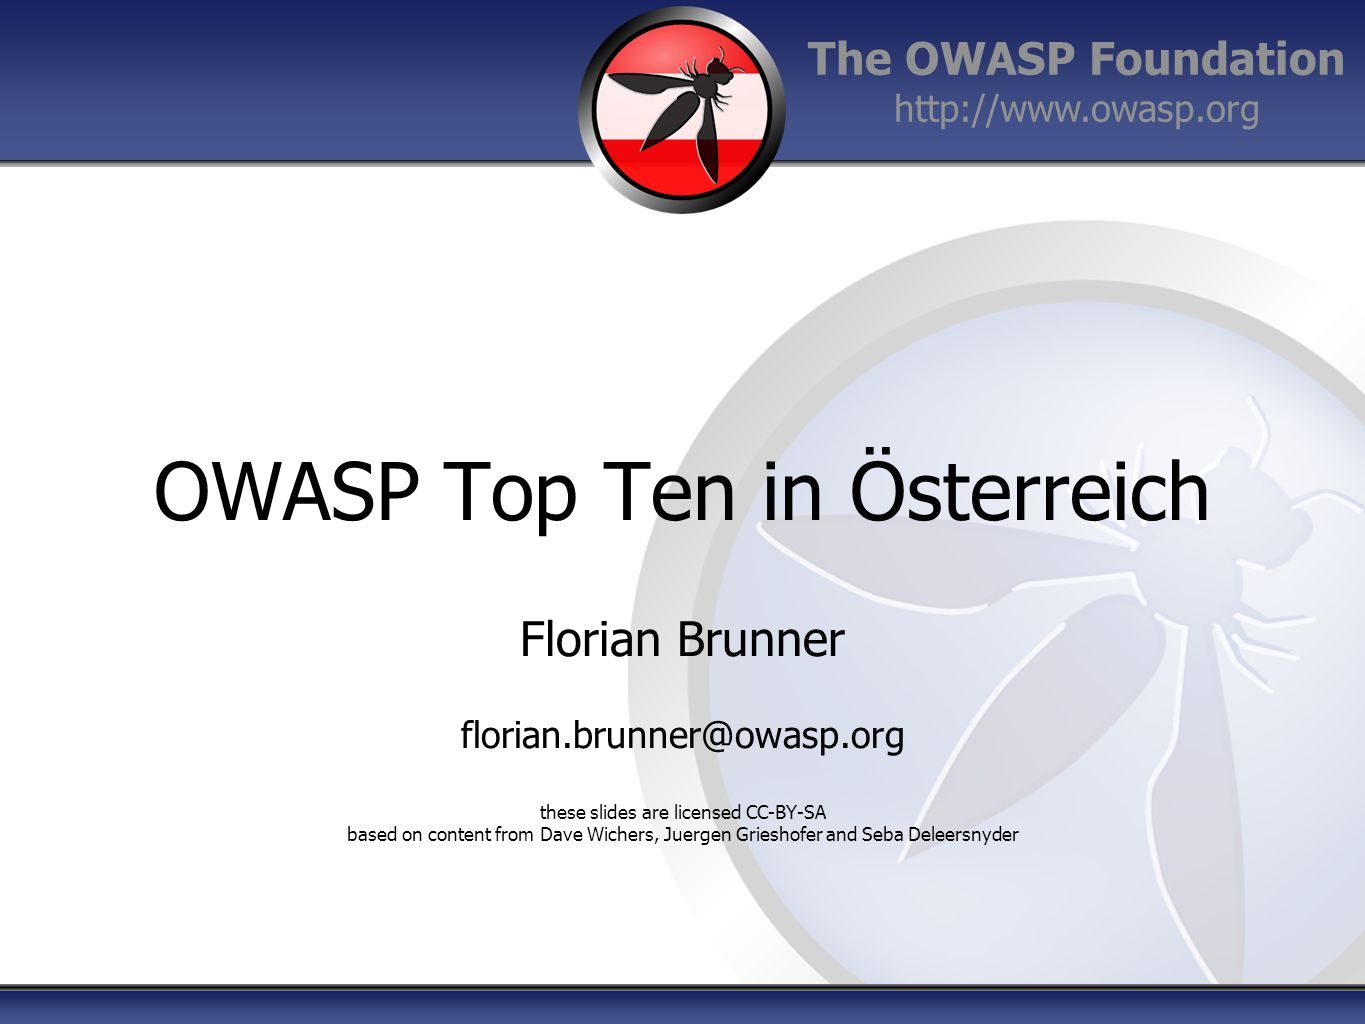 The OWASP Foundation http://www.owasp.org OWASP Top Ten in Österreich Florian Brunner florian.brunner@owasp.org these slides are licensed CC-BY-SA based on content from Dave Wichers, Juergen Grieshofer and Seba Deleersnyder